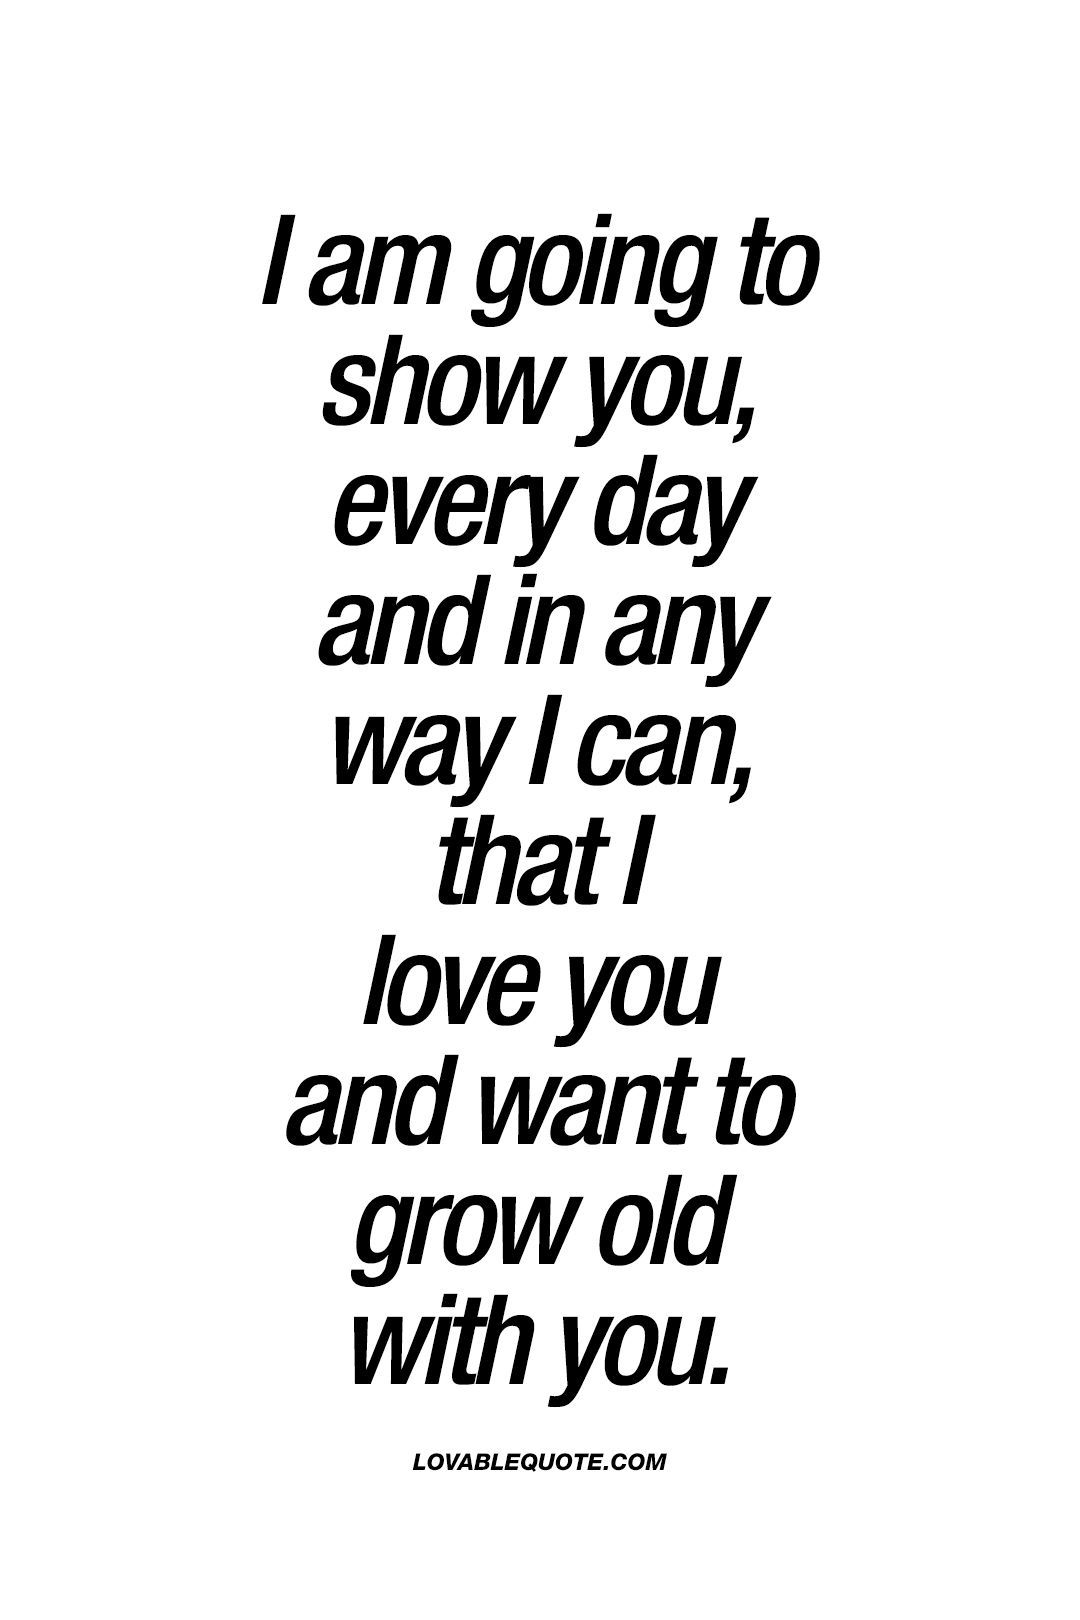 I Am Going To Show You Every Day And In Any Way I Can That I Love You And Want To Grow Old With You This Is What Lo Be